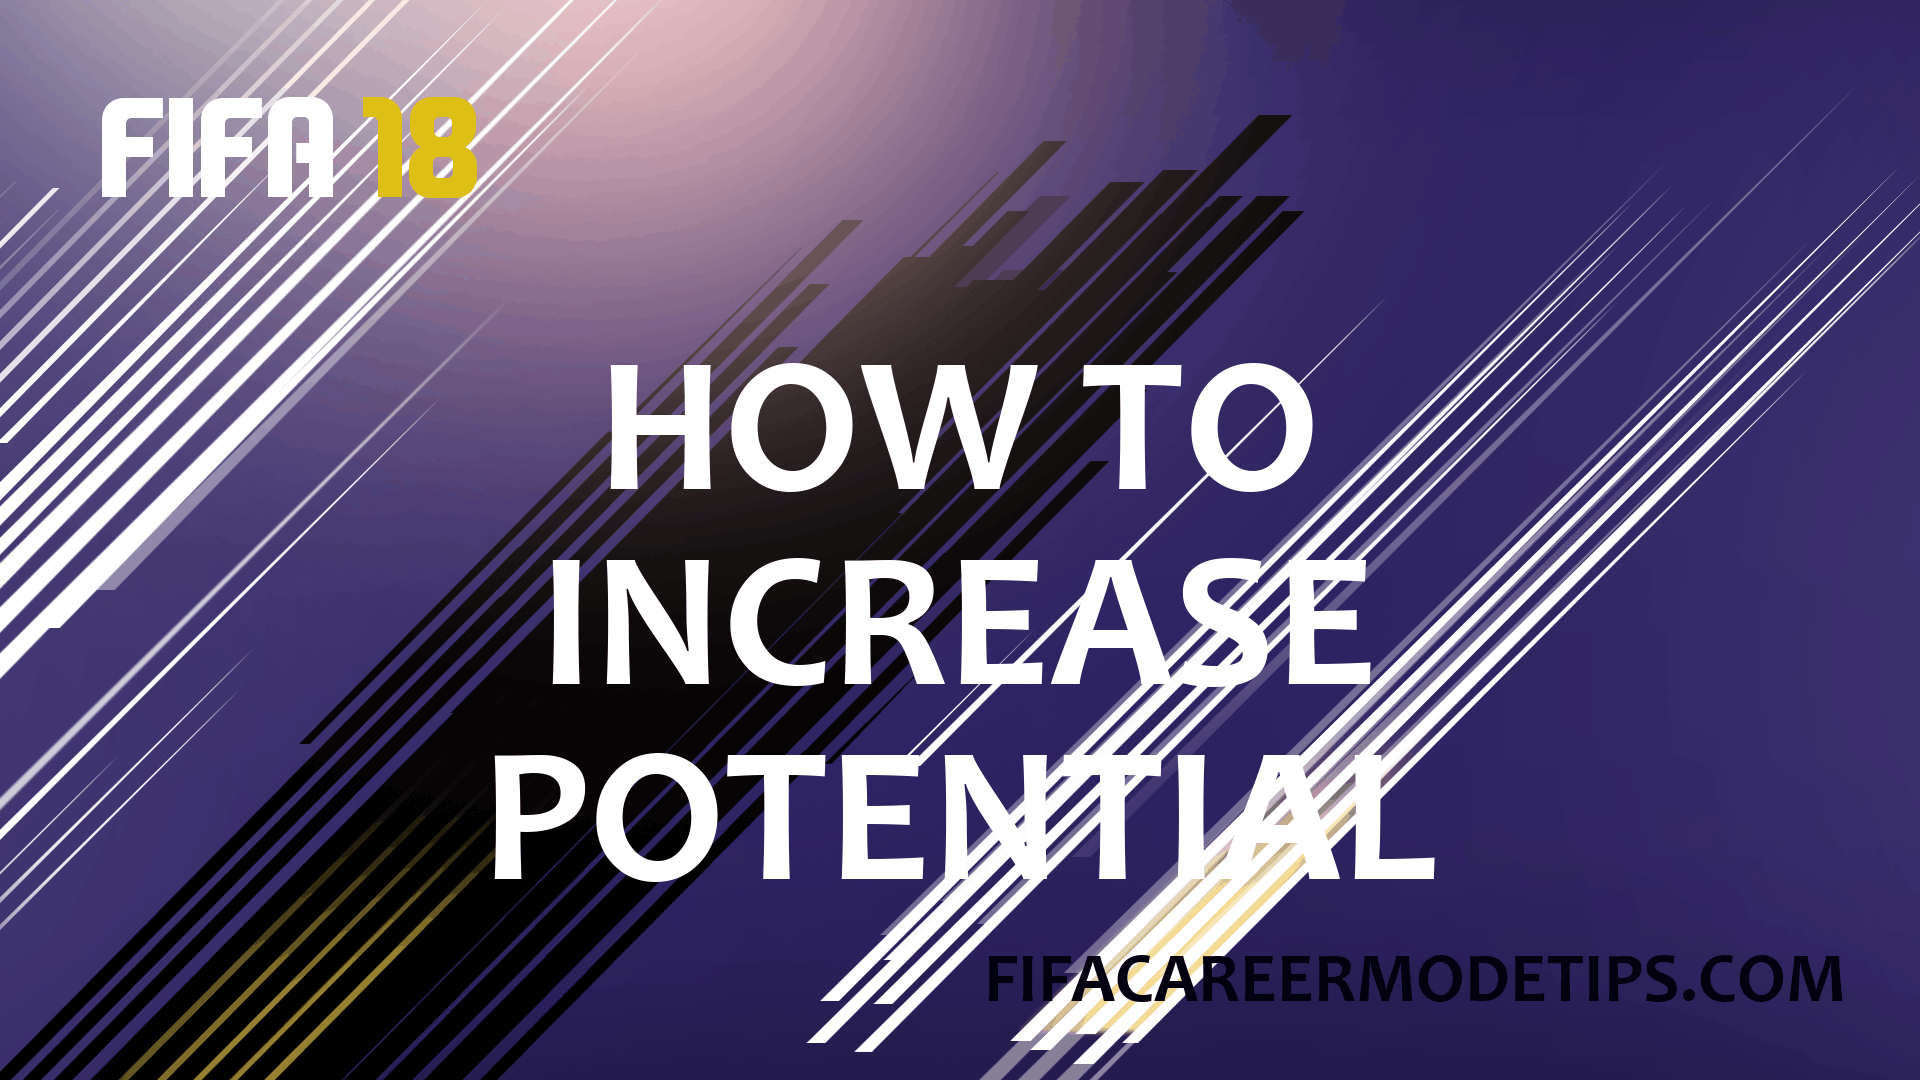 How to Increase Potential